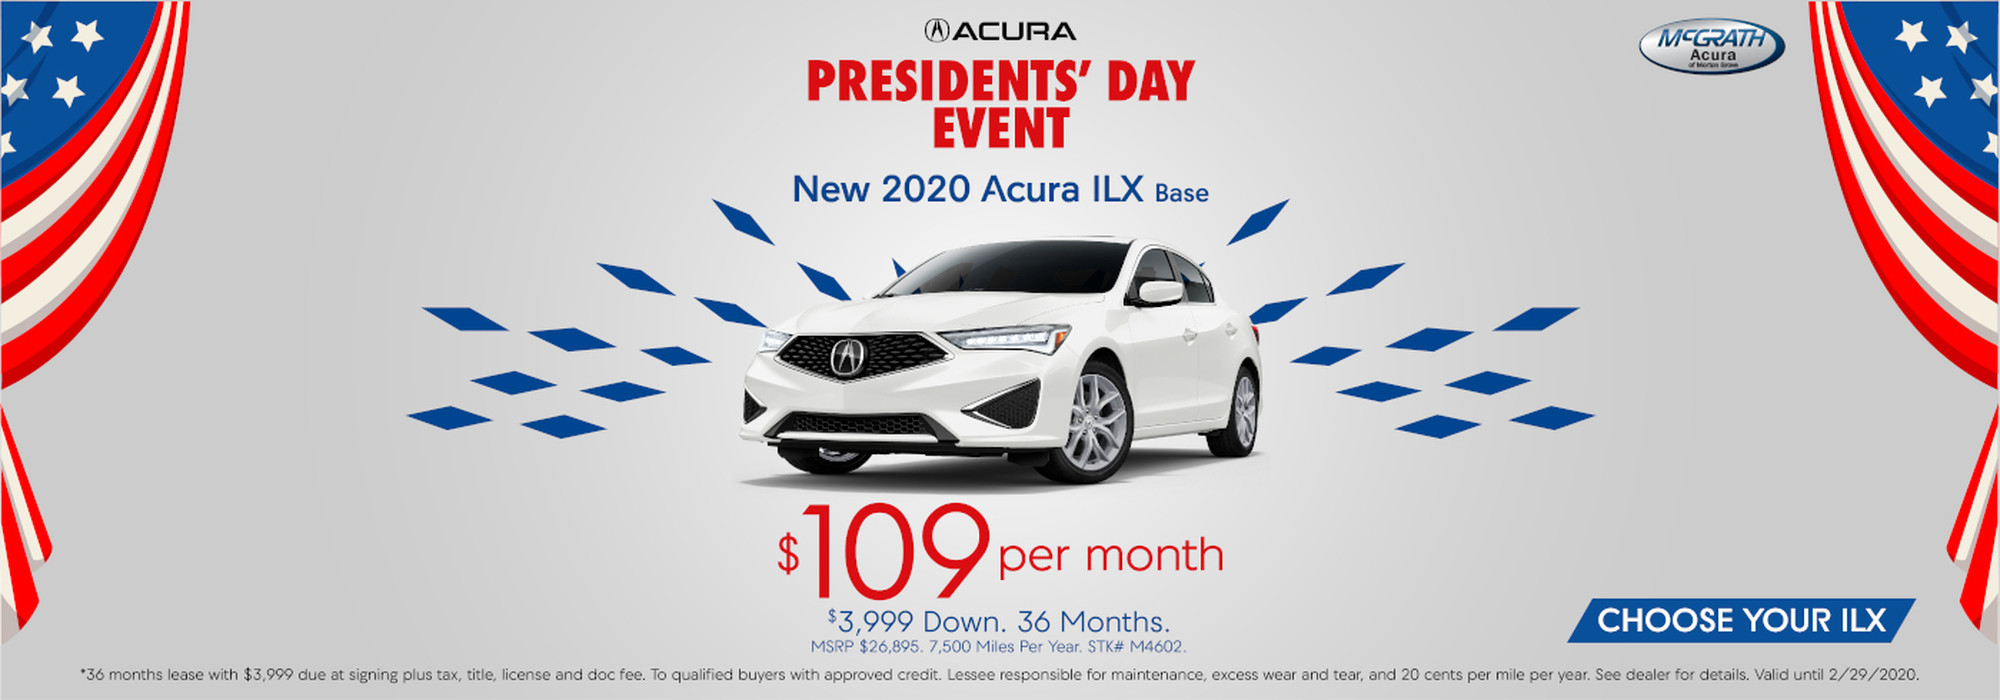 New 2020 Acura ILX Base for $109 per month and $3999 down for 36 months